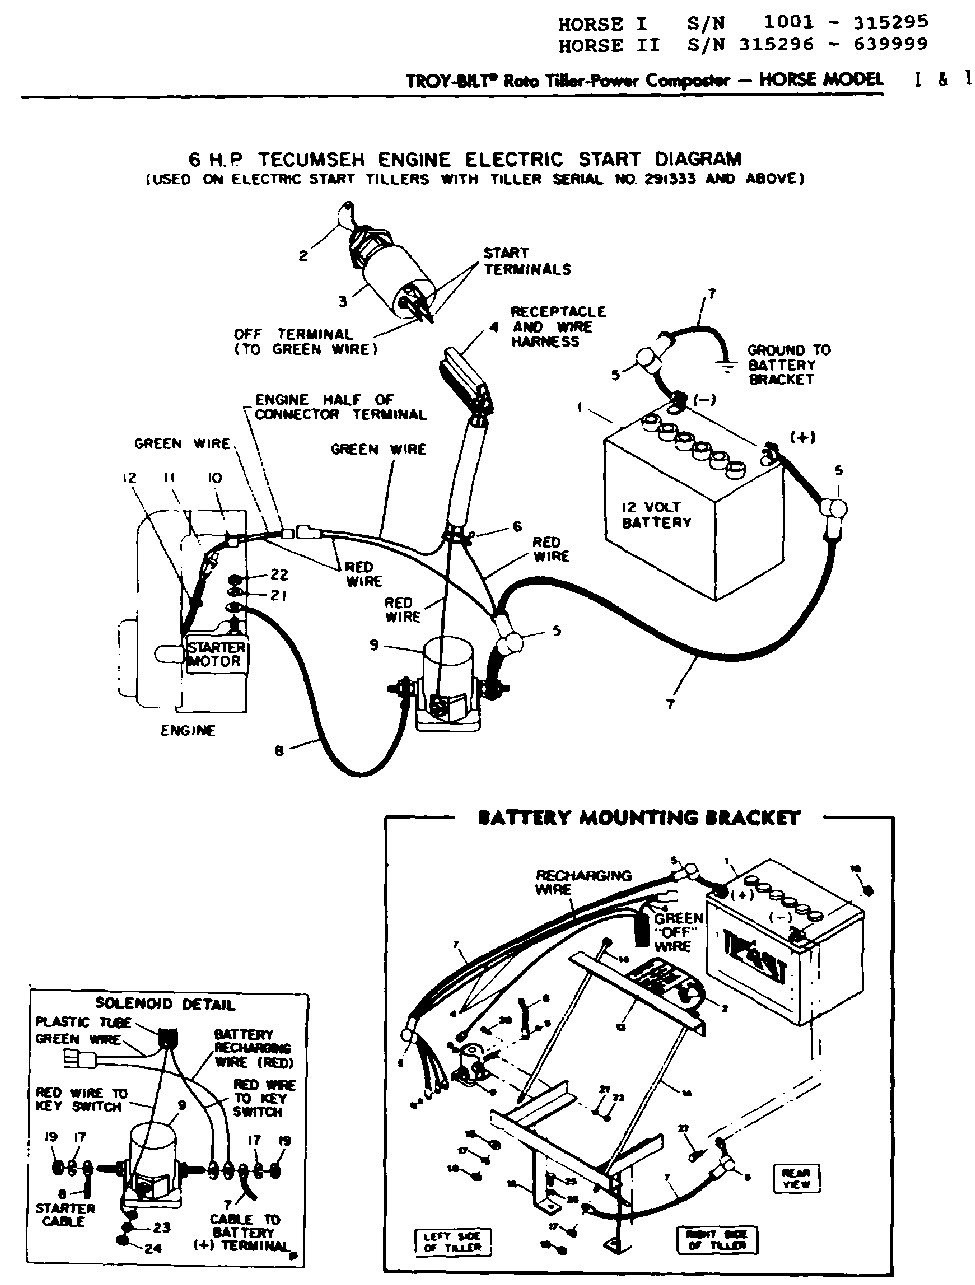 Tecumseh Tc20a-g-404-115 Wiring Diagram I Have A Tecumseh Hh60 F On A Troy Bilt Horse the Ignition Switch Fell Apart I Installed Of Tecumseh Tc20a-g-404-115 Wiring Diagram